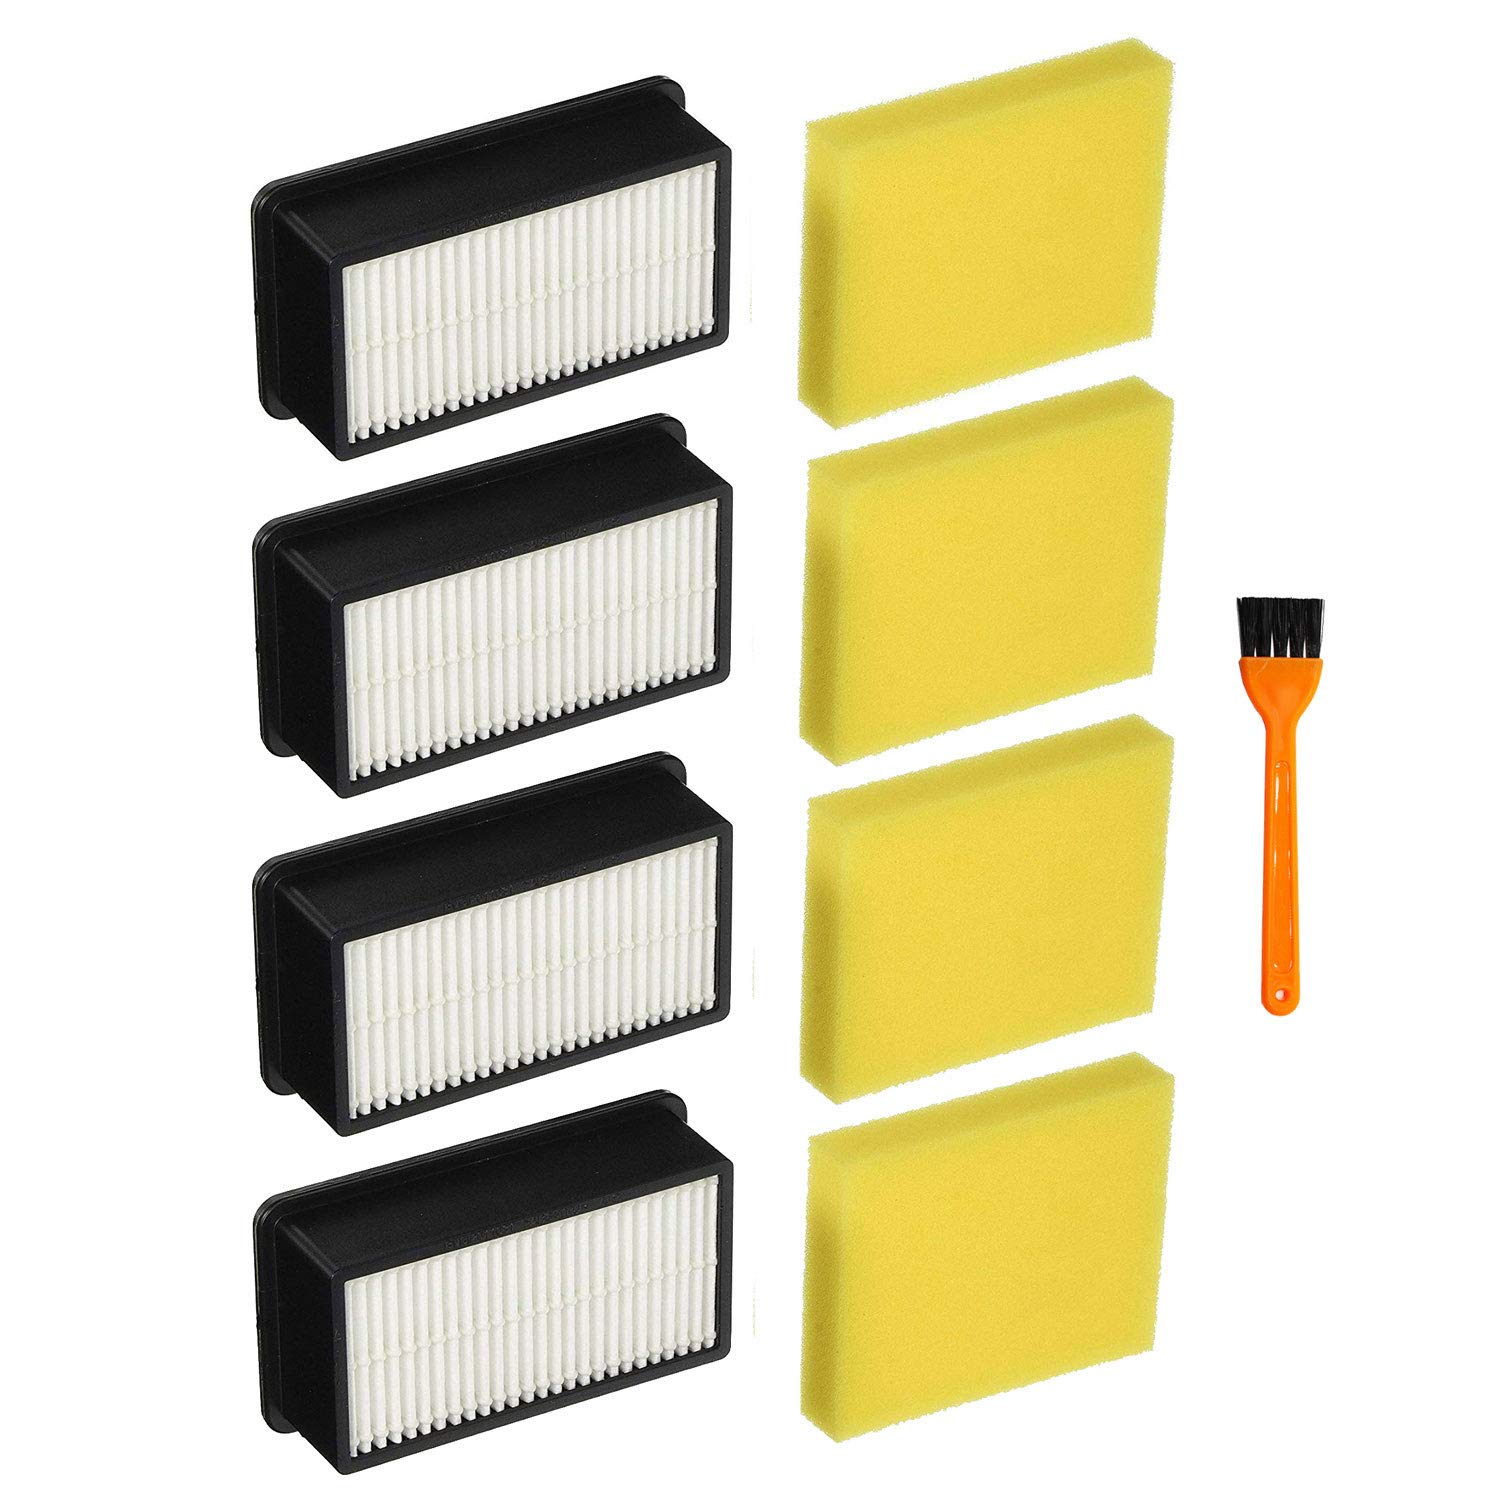 Lemige 4 + 4 Pack Filters for Bissell 1008 CleanView Vacuums Replacement Filters Kit, Compare to Part 2032663 & 1601502